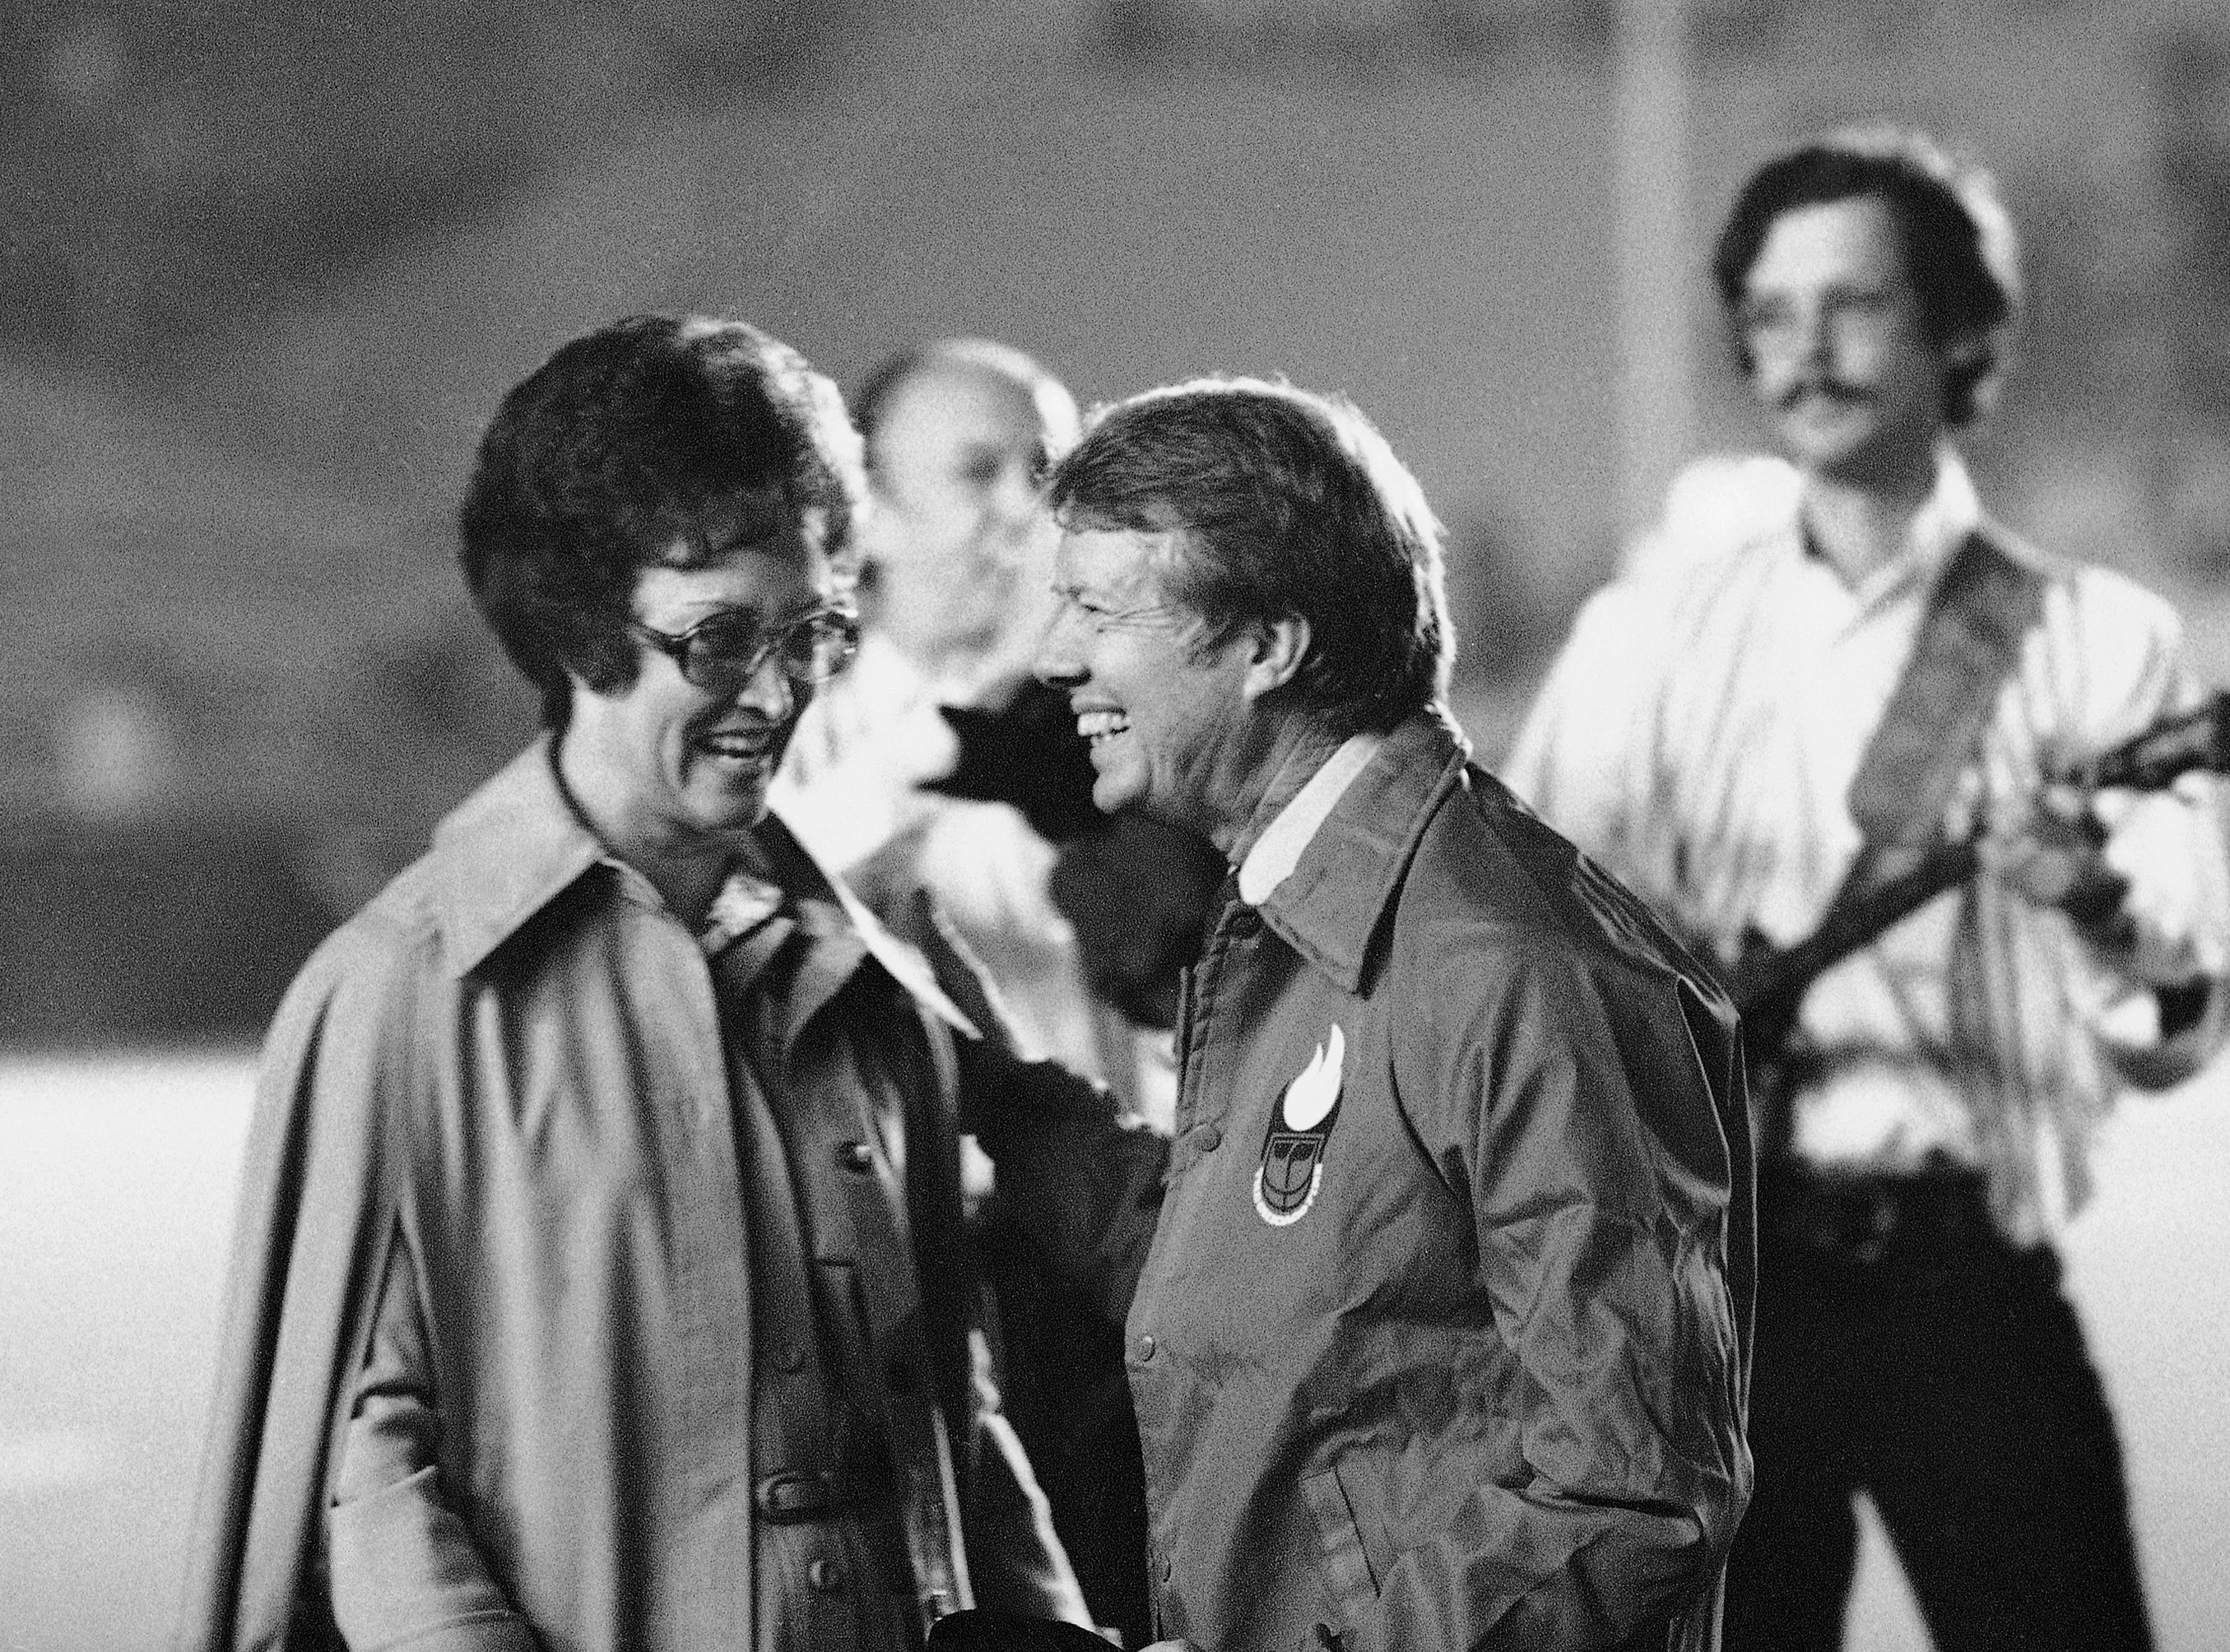 Georgia Gov. Jimmy Carter sports a Chicago Fire team jacket presented to him by Betty Spence, Democratic congressional candidate from the Illinois 12th District, in Chicago, Sept. 19, 1974.